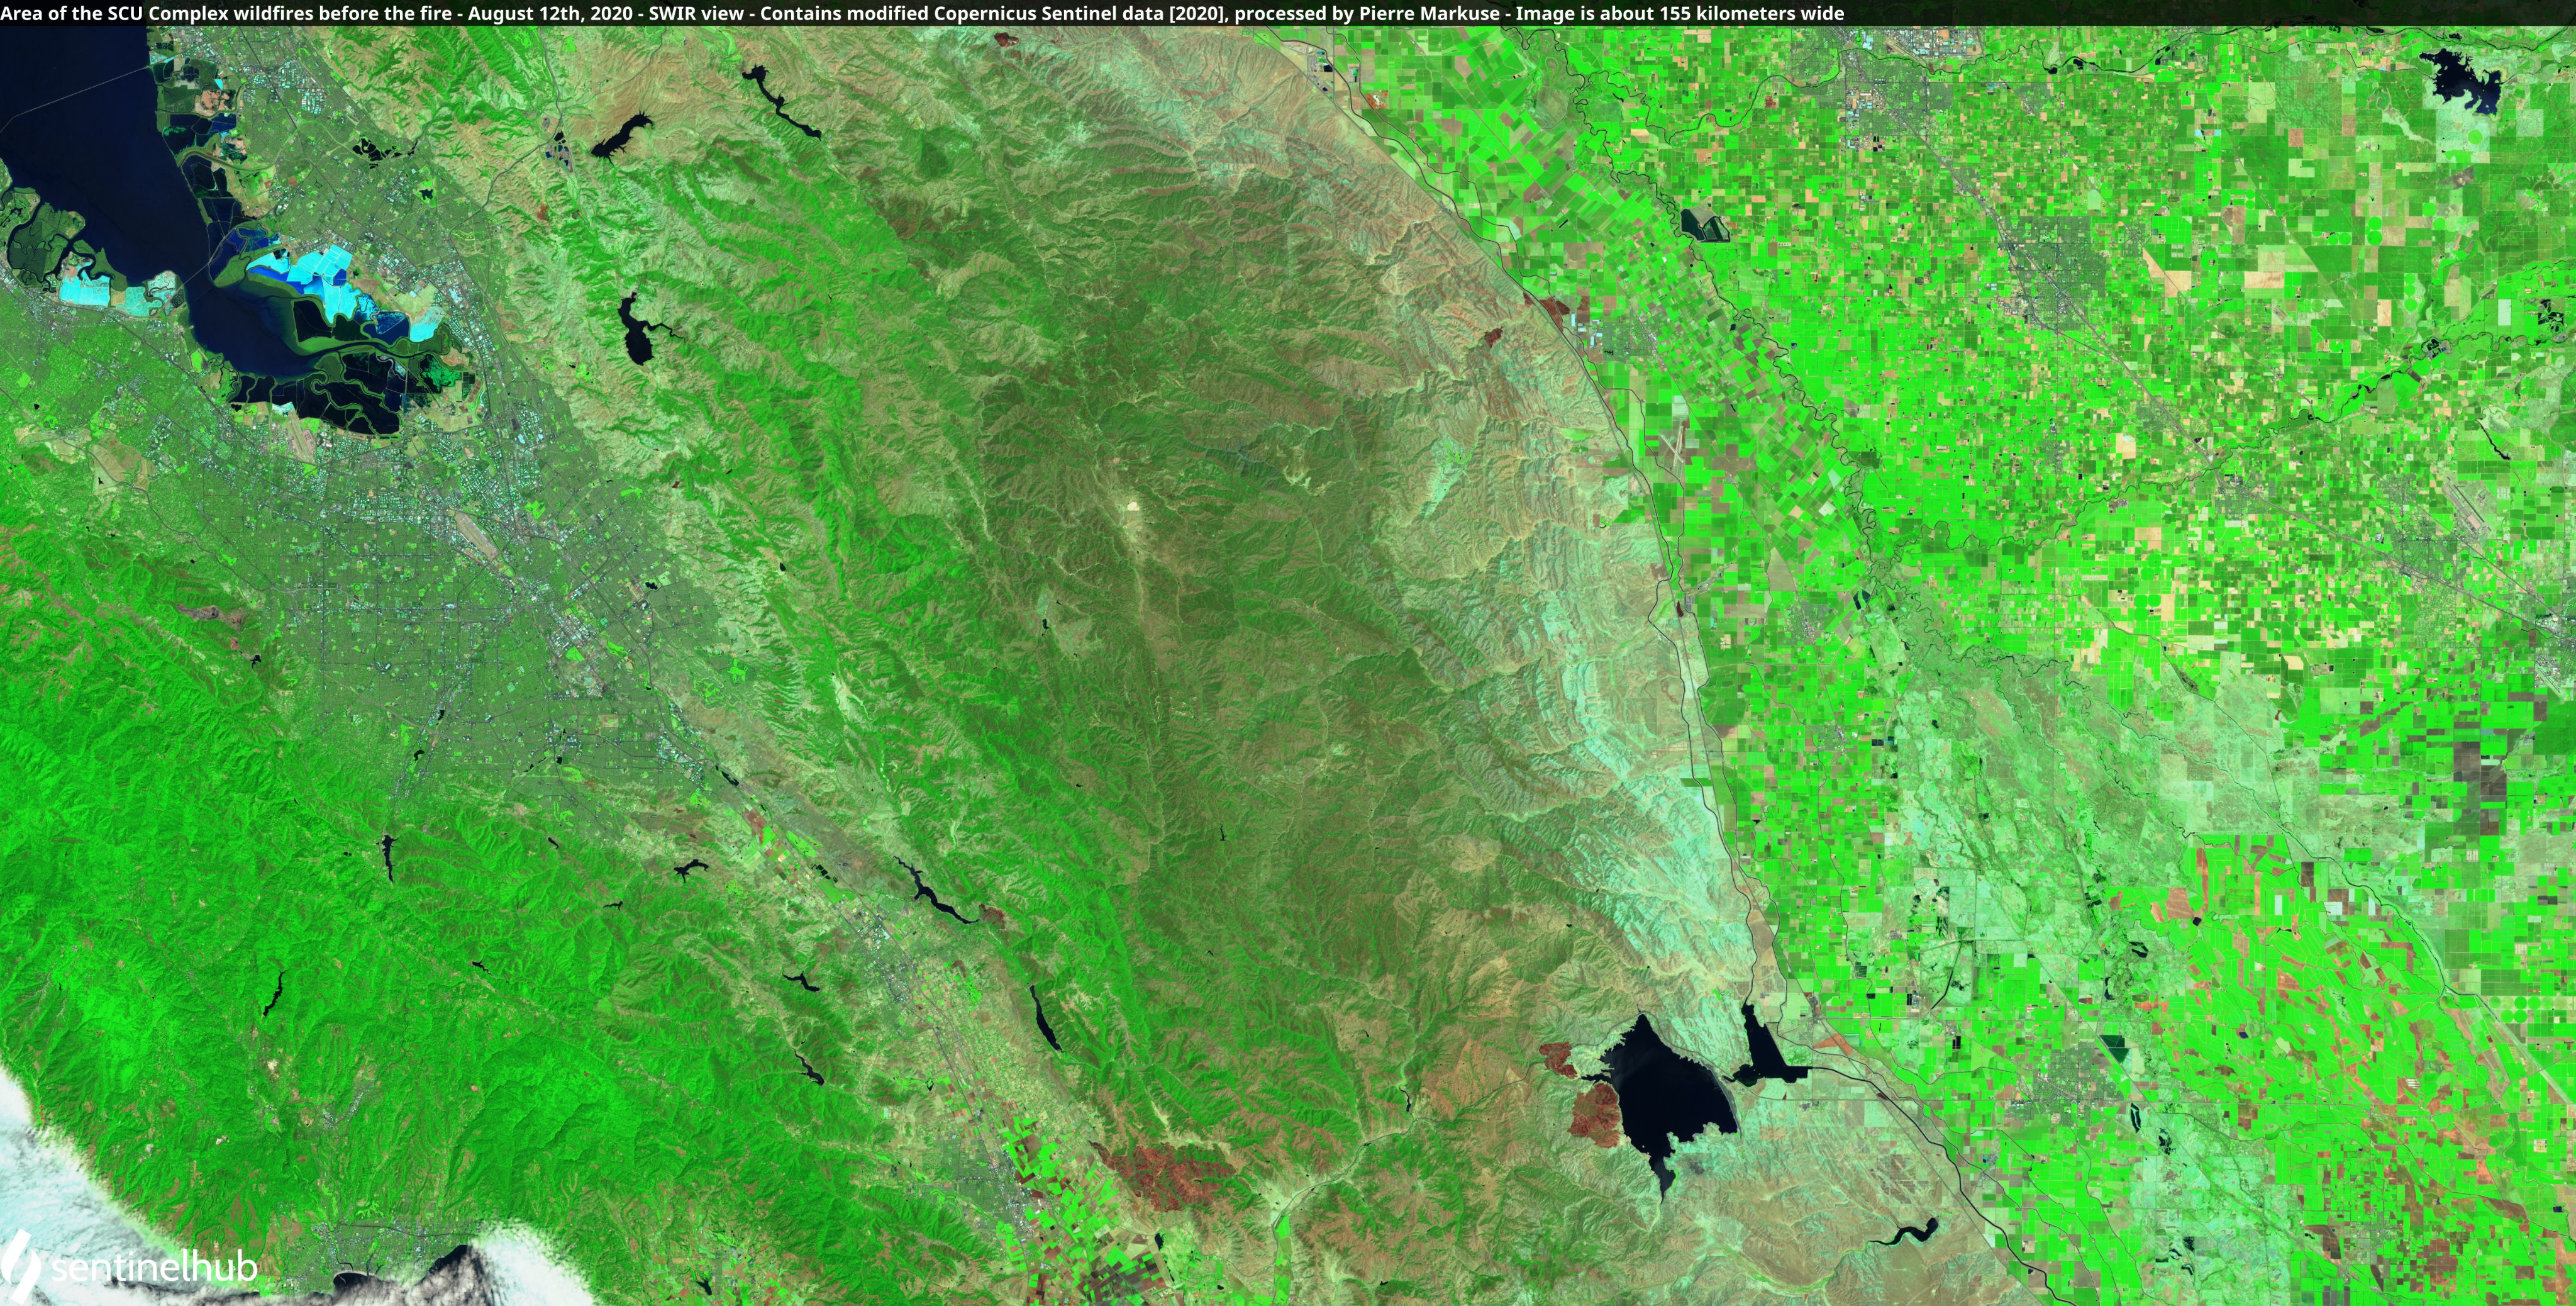 Satellite image of the area of the SCU Lightning Complex fires before the fire. Copernicus/Pierre Markuse